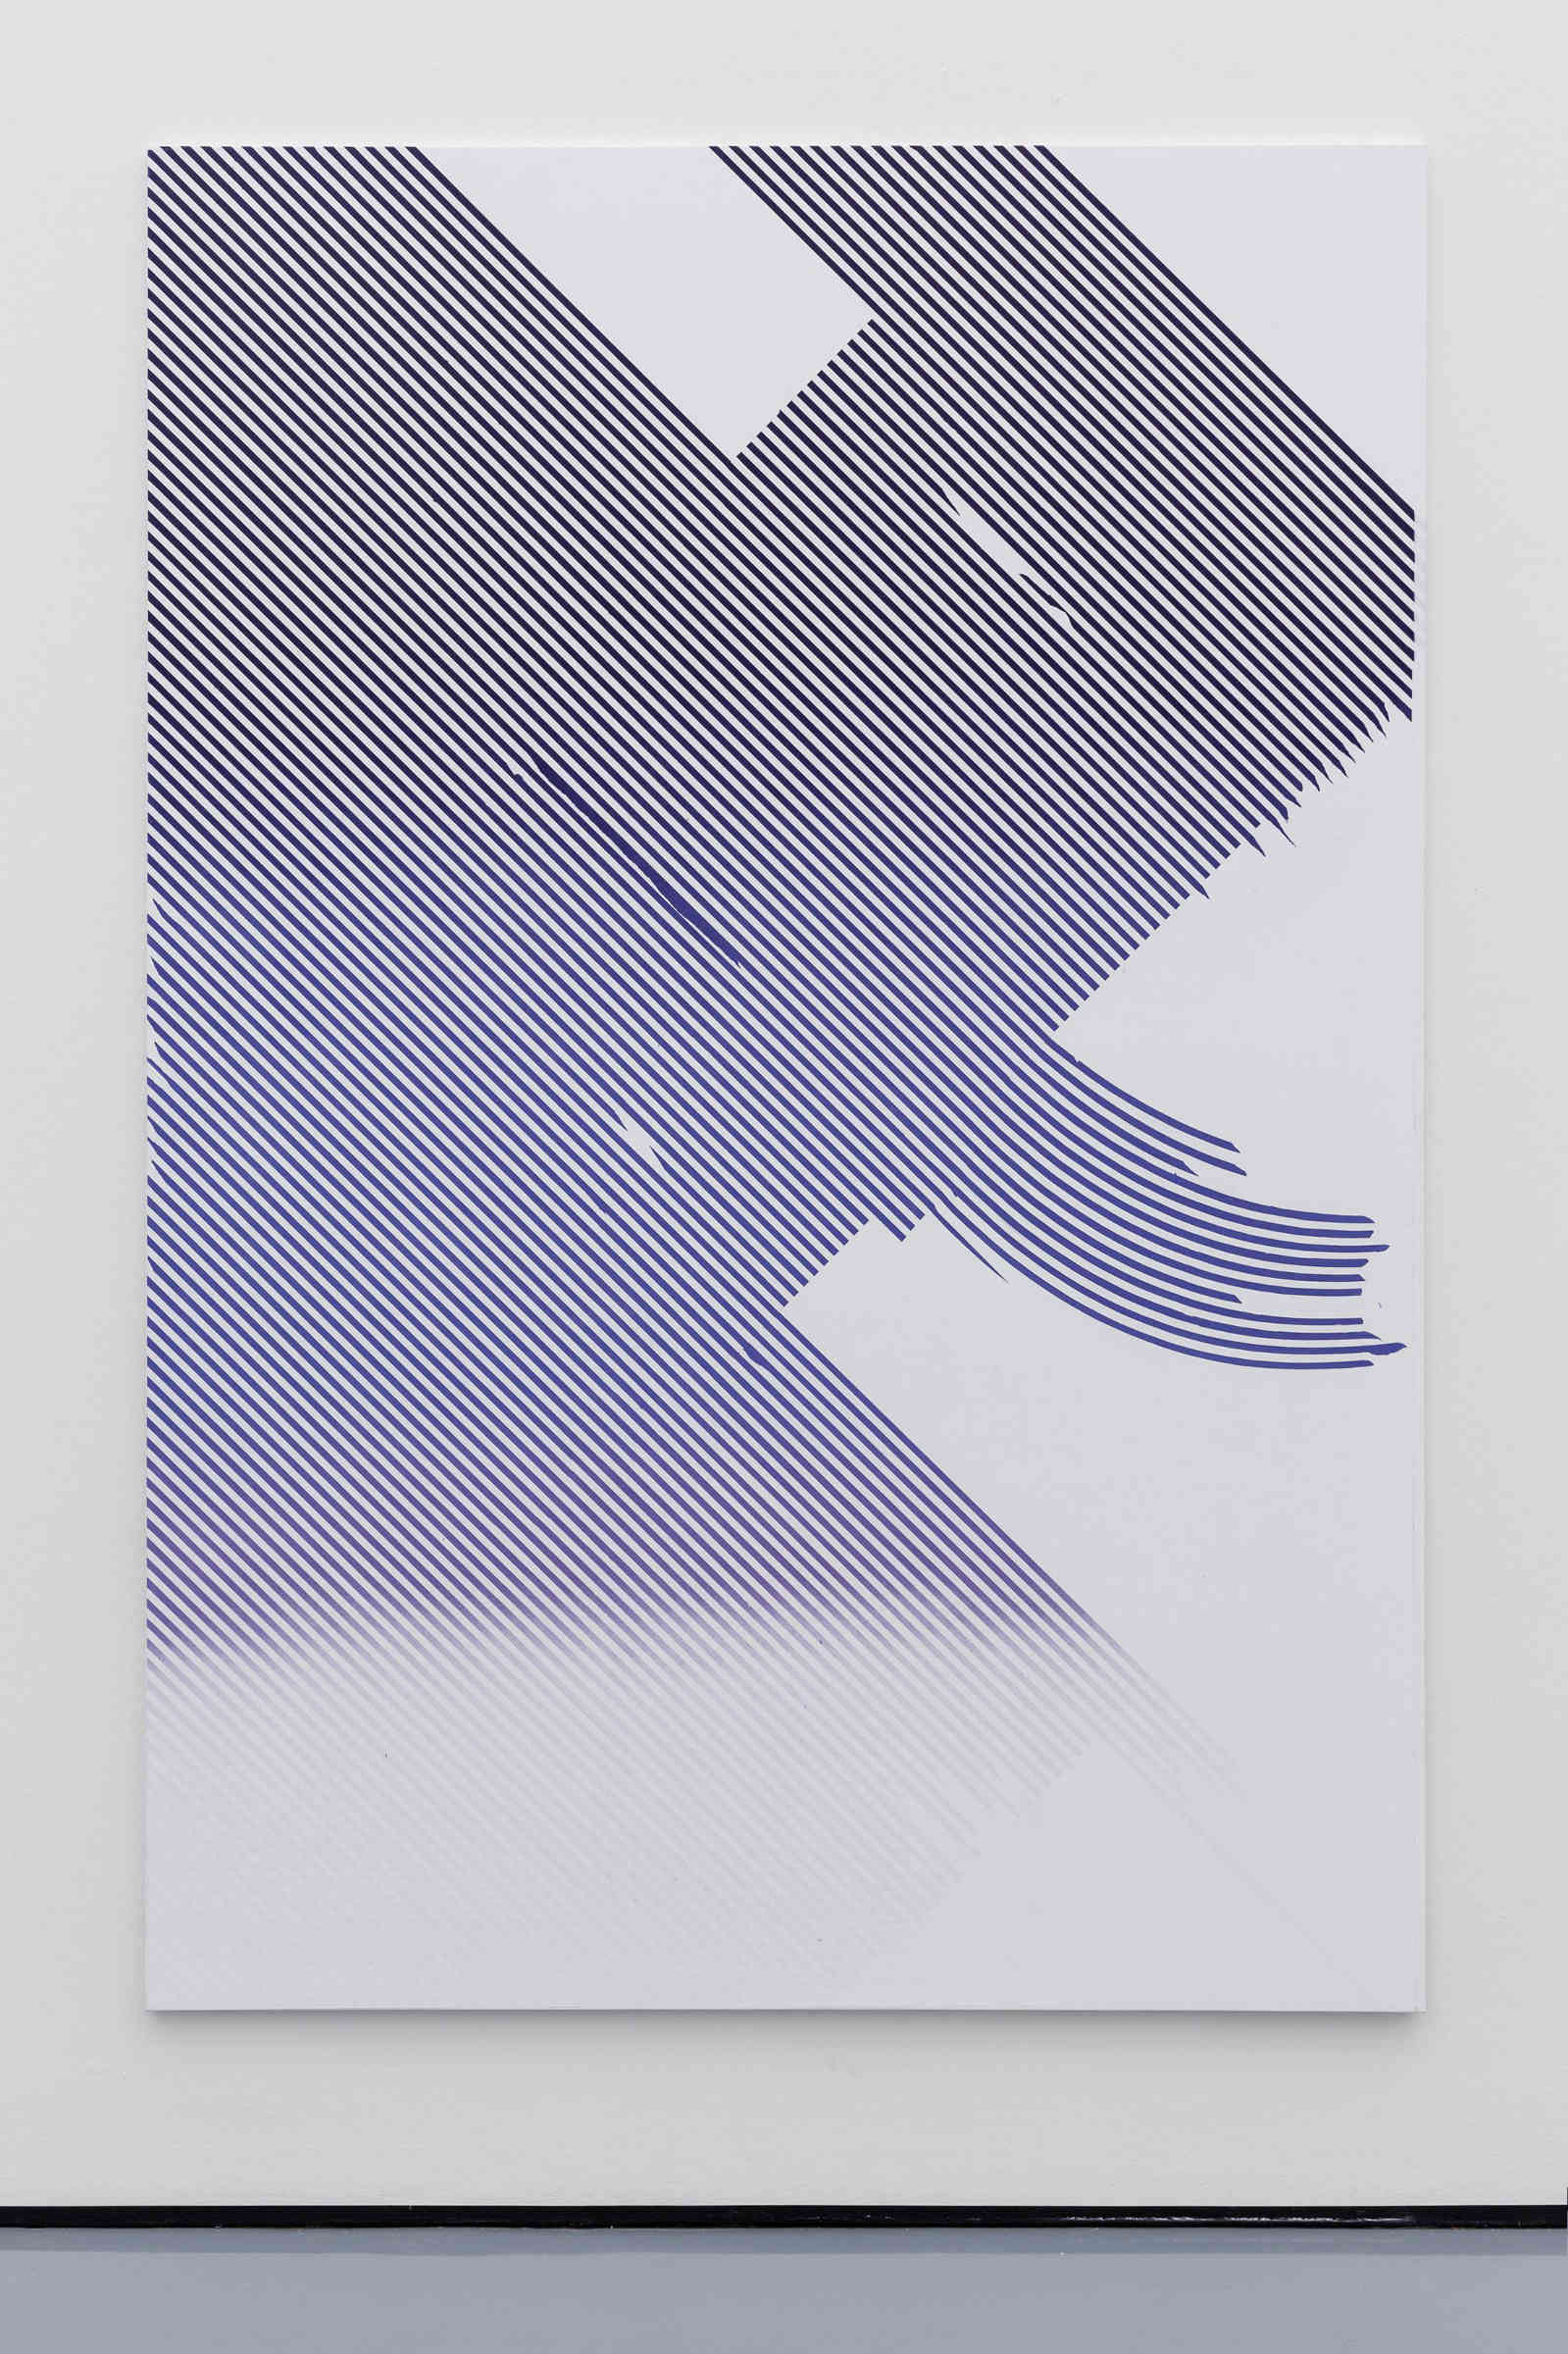 15_Tiziano Martini, 2012, acrylic on cotton, cm 260x180, courtesy The Artist_Dolomiti Contemporanee_view at Museum Kunstpalast_photo Marcell Stahn